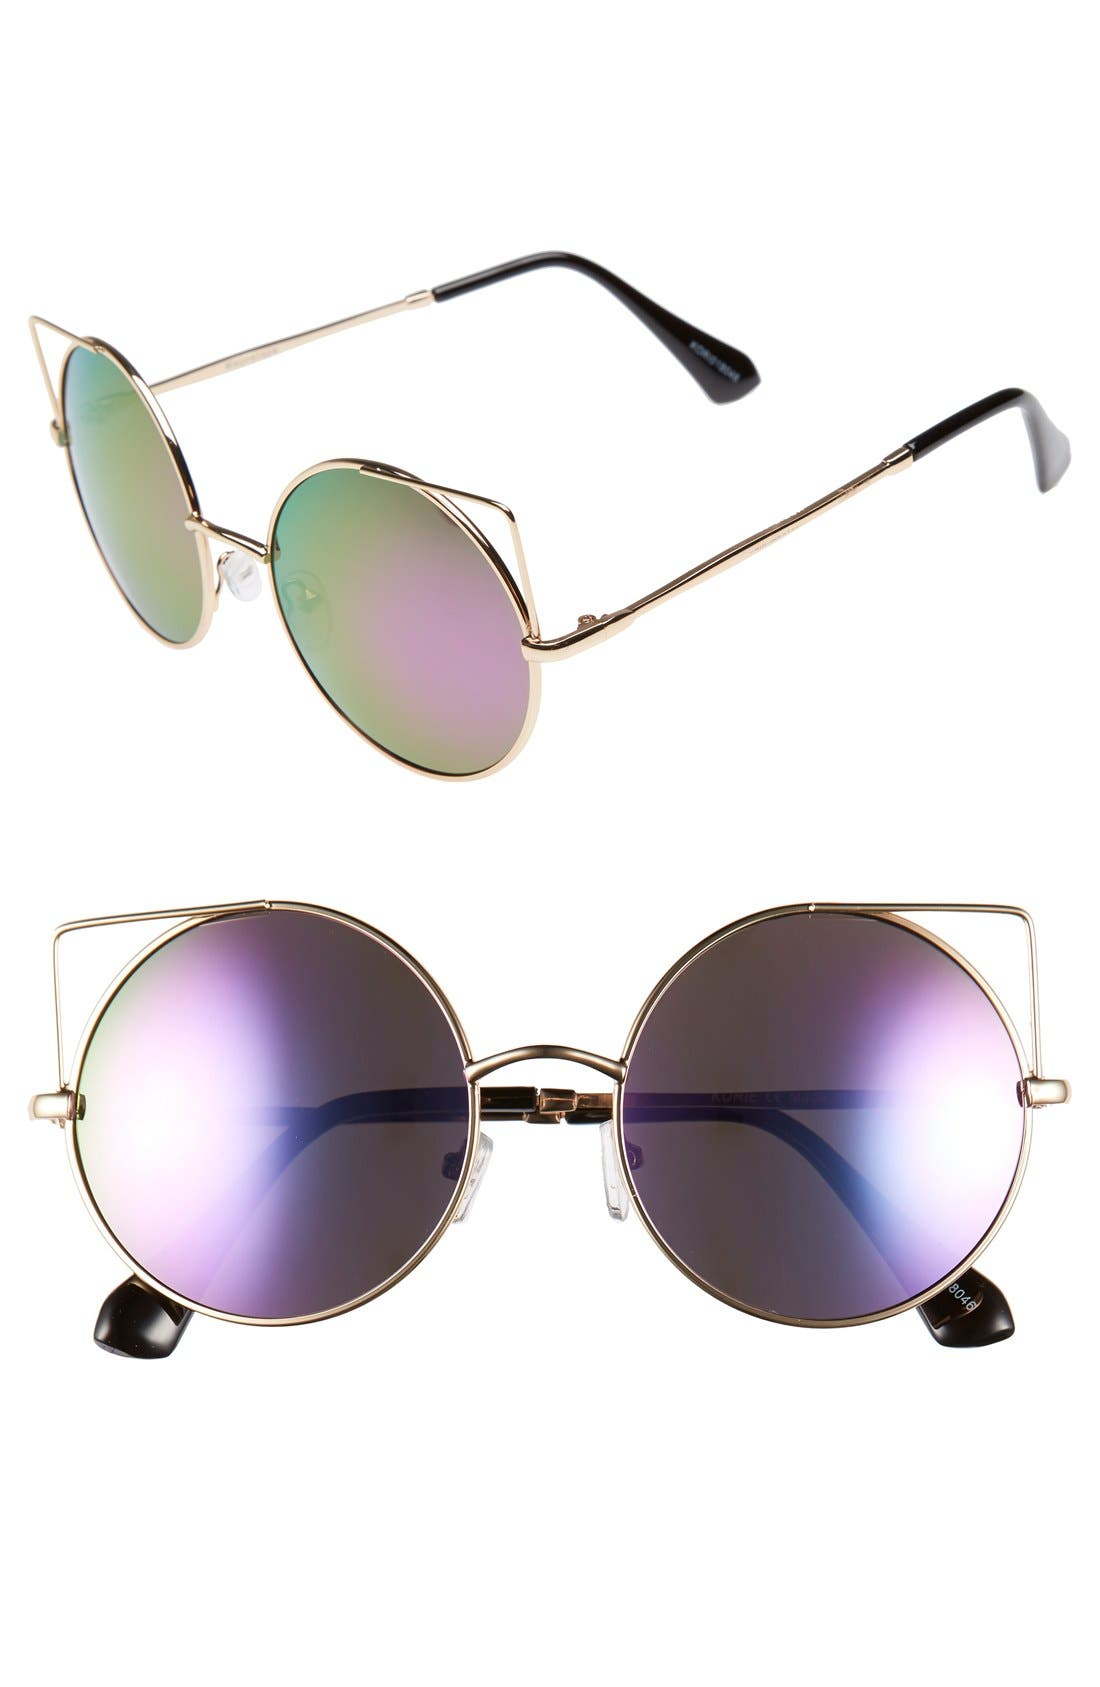 Main Image - BP. 55mm Round Mirrored Lens Sunglasses